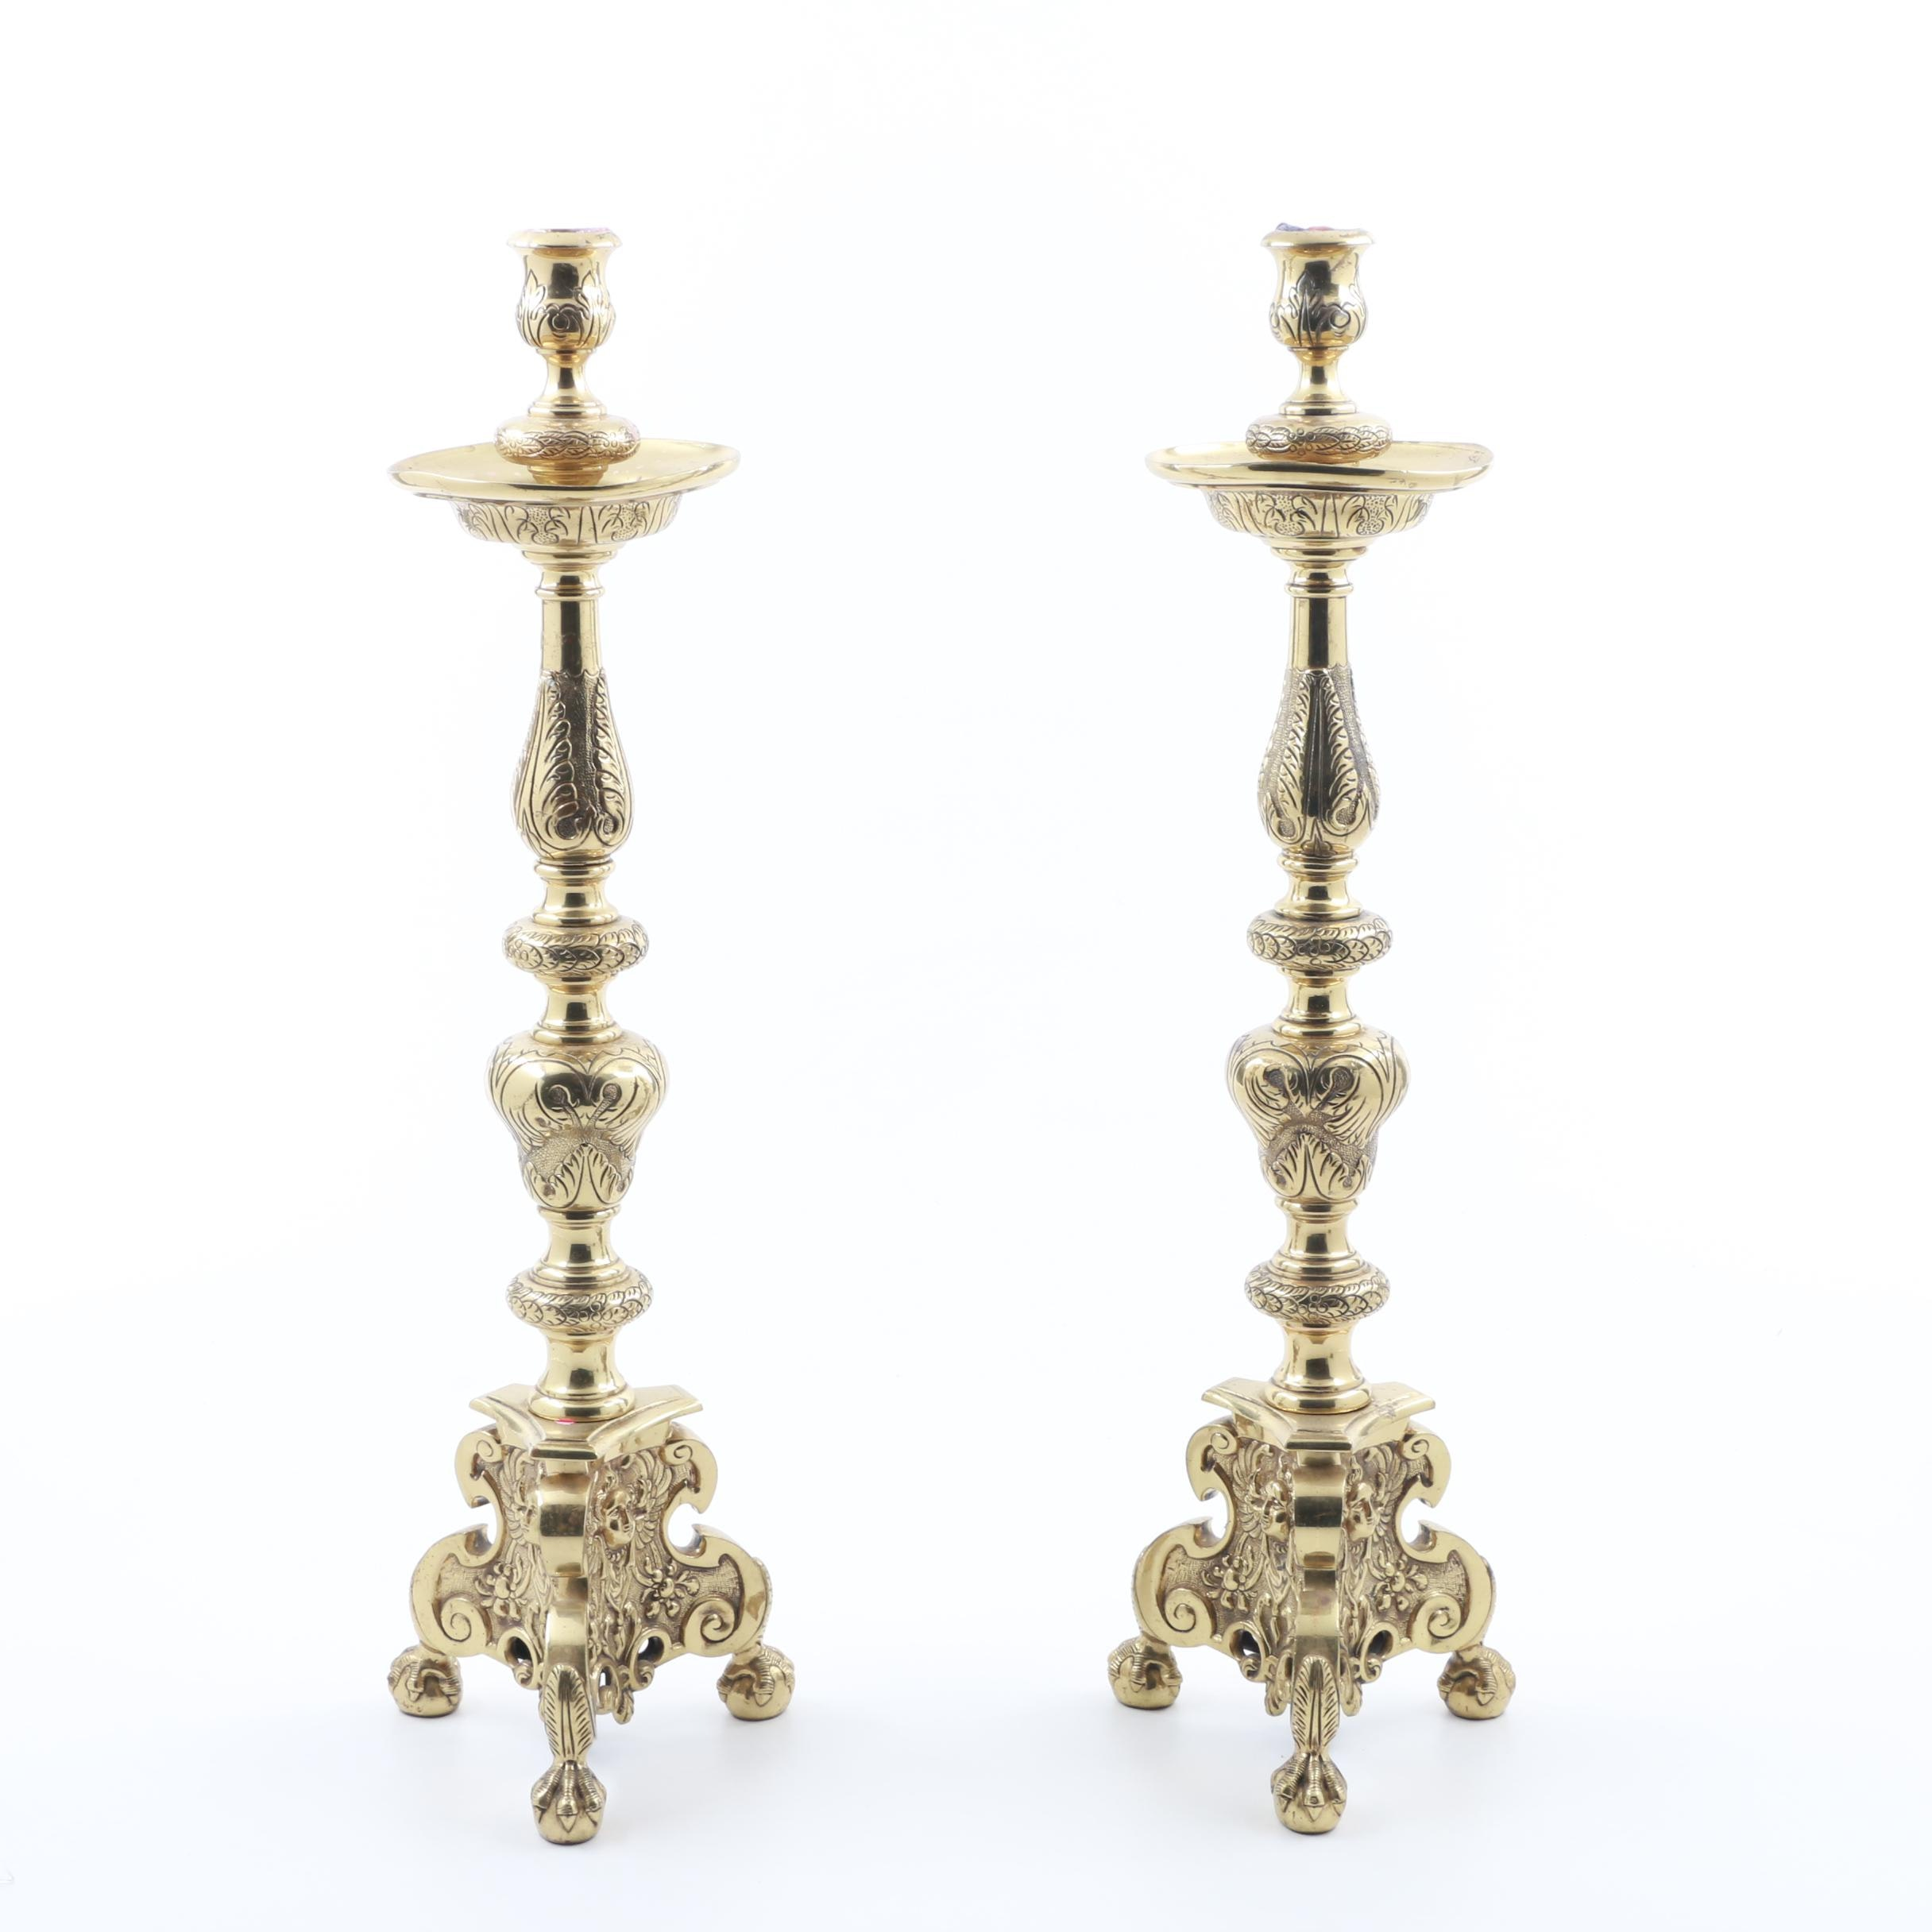 Large English Cast Brass Candle Holders